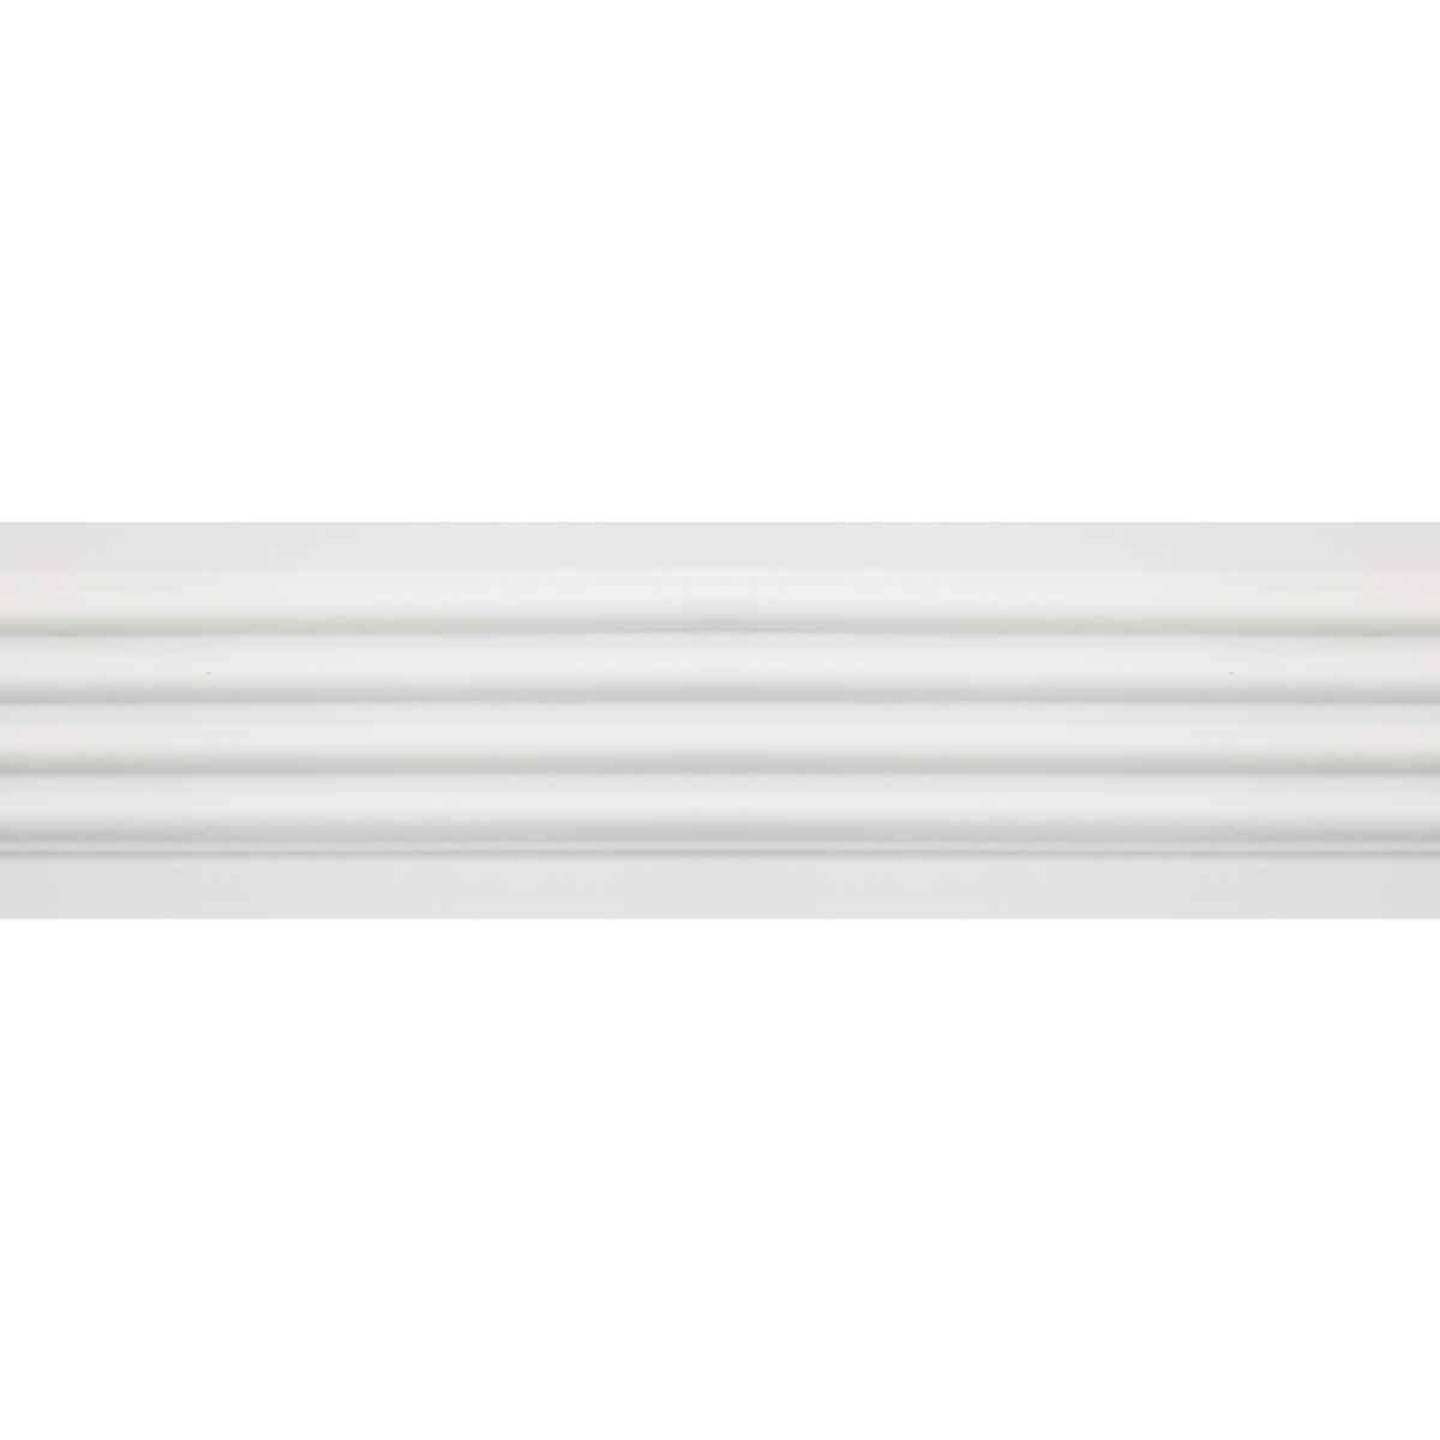 House of Fara 3/4 In. W. x 3 In. H. x 8 Ft. L. White MDF Fluted Casing Molding Image 3